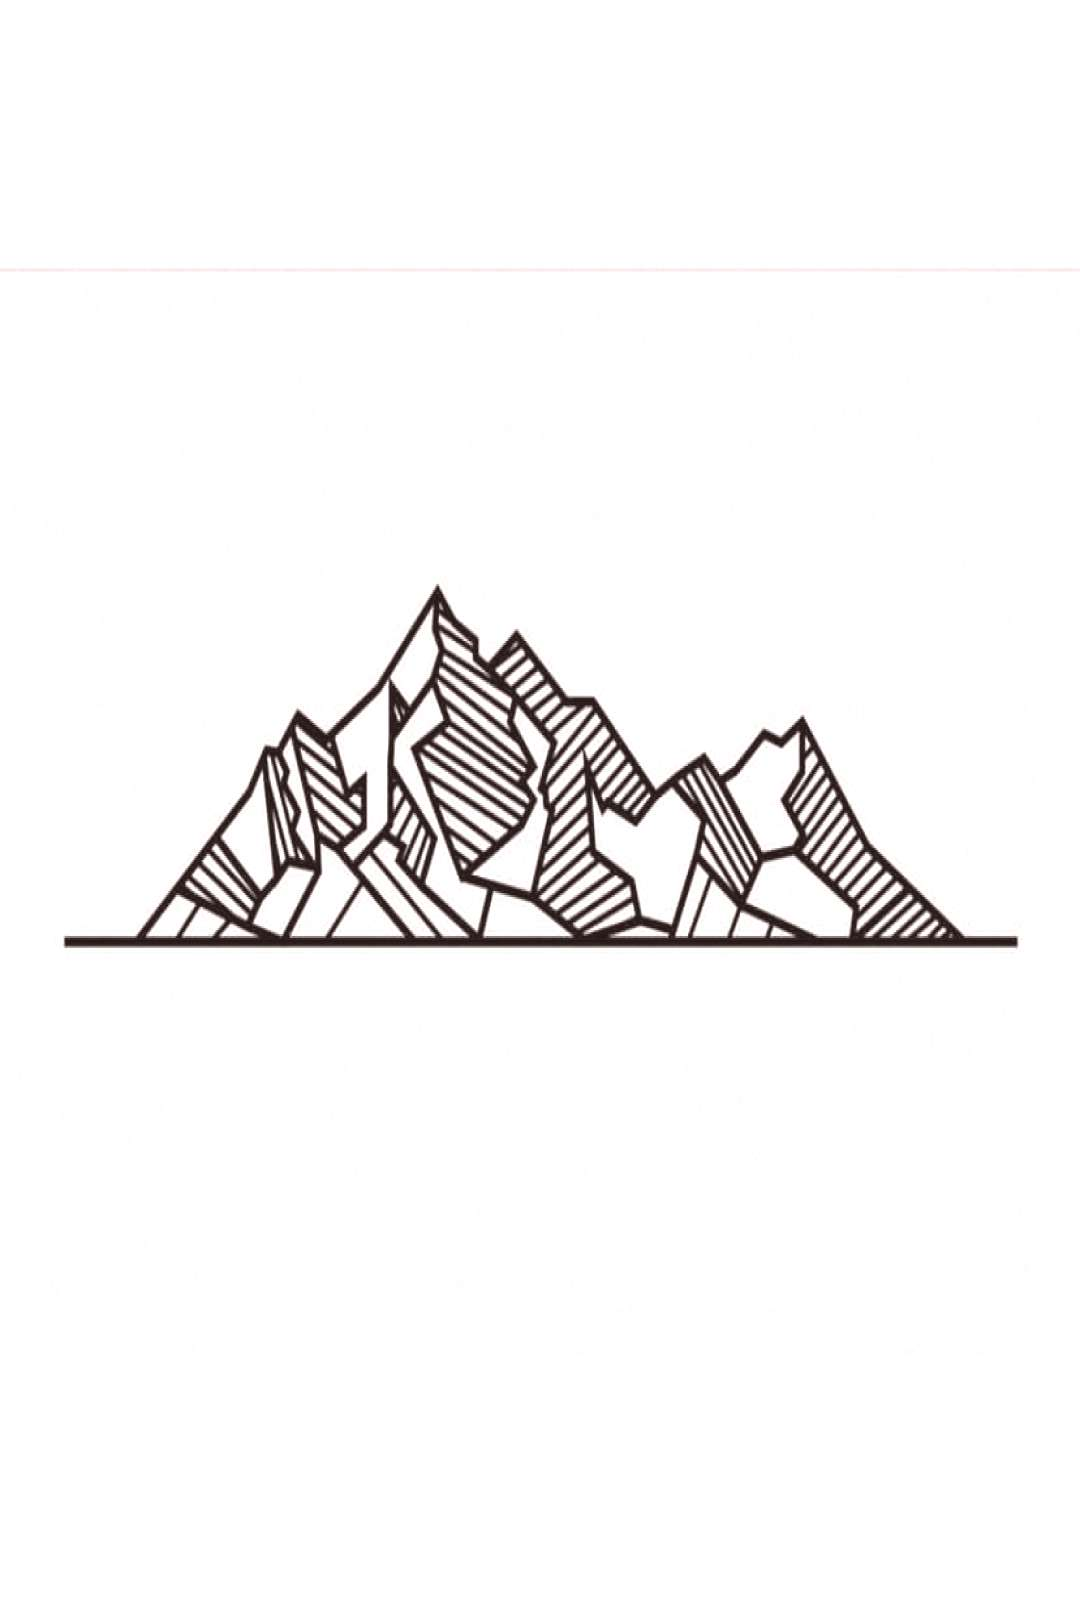 Mountain time Follow plz♡ . . . #simple #draw #drawing #easy #d